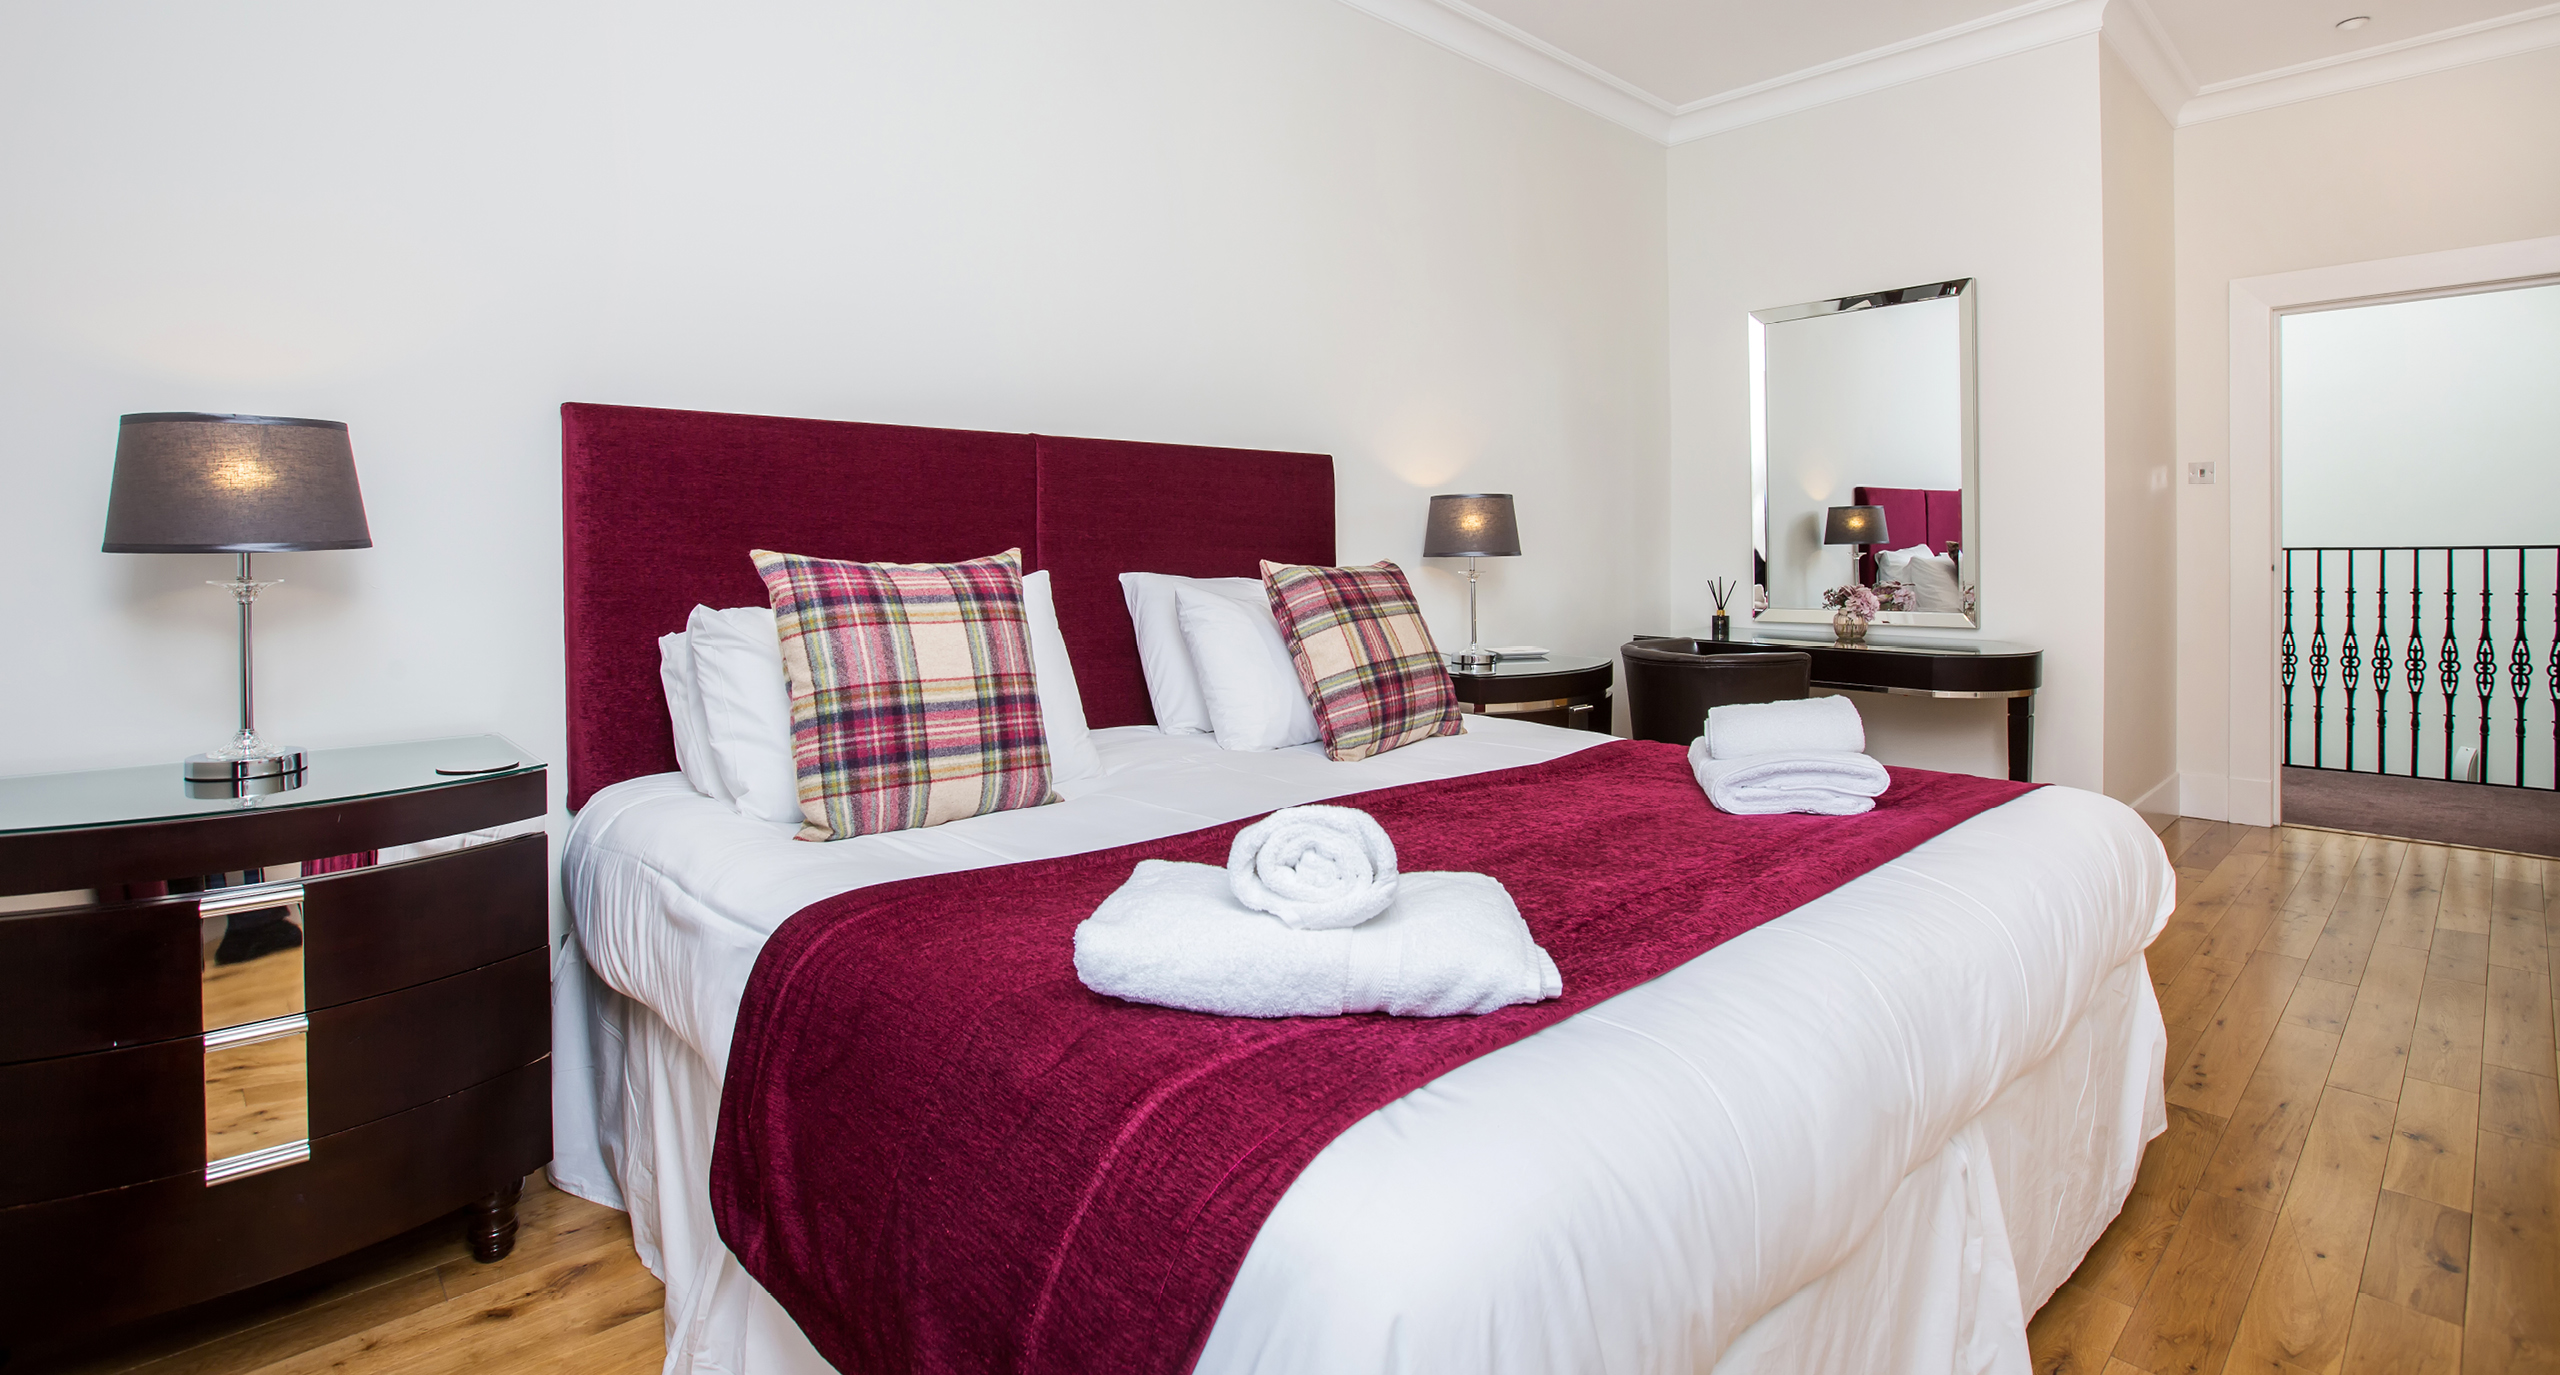 Blythswood Square Apartments in Glasgow